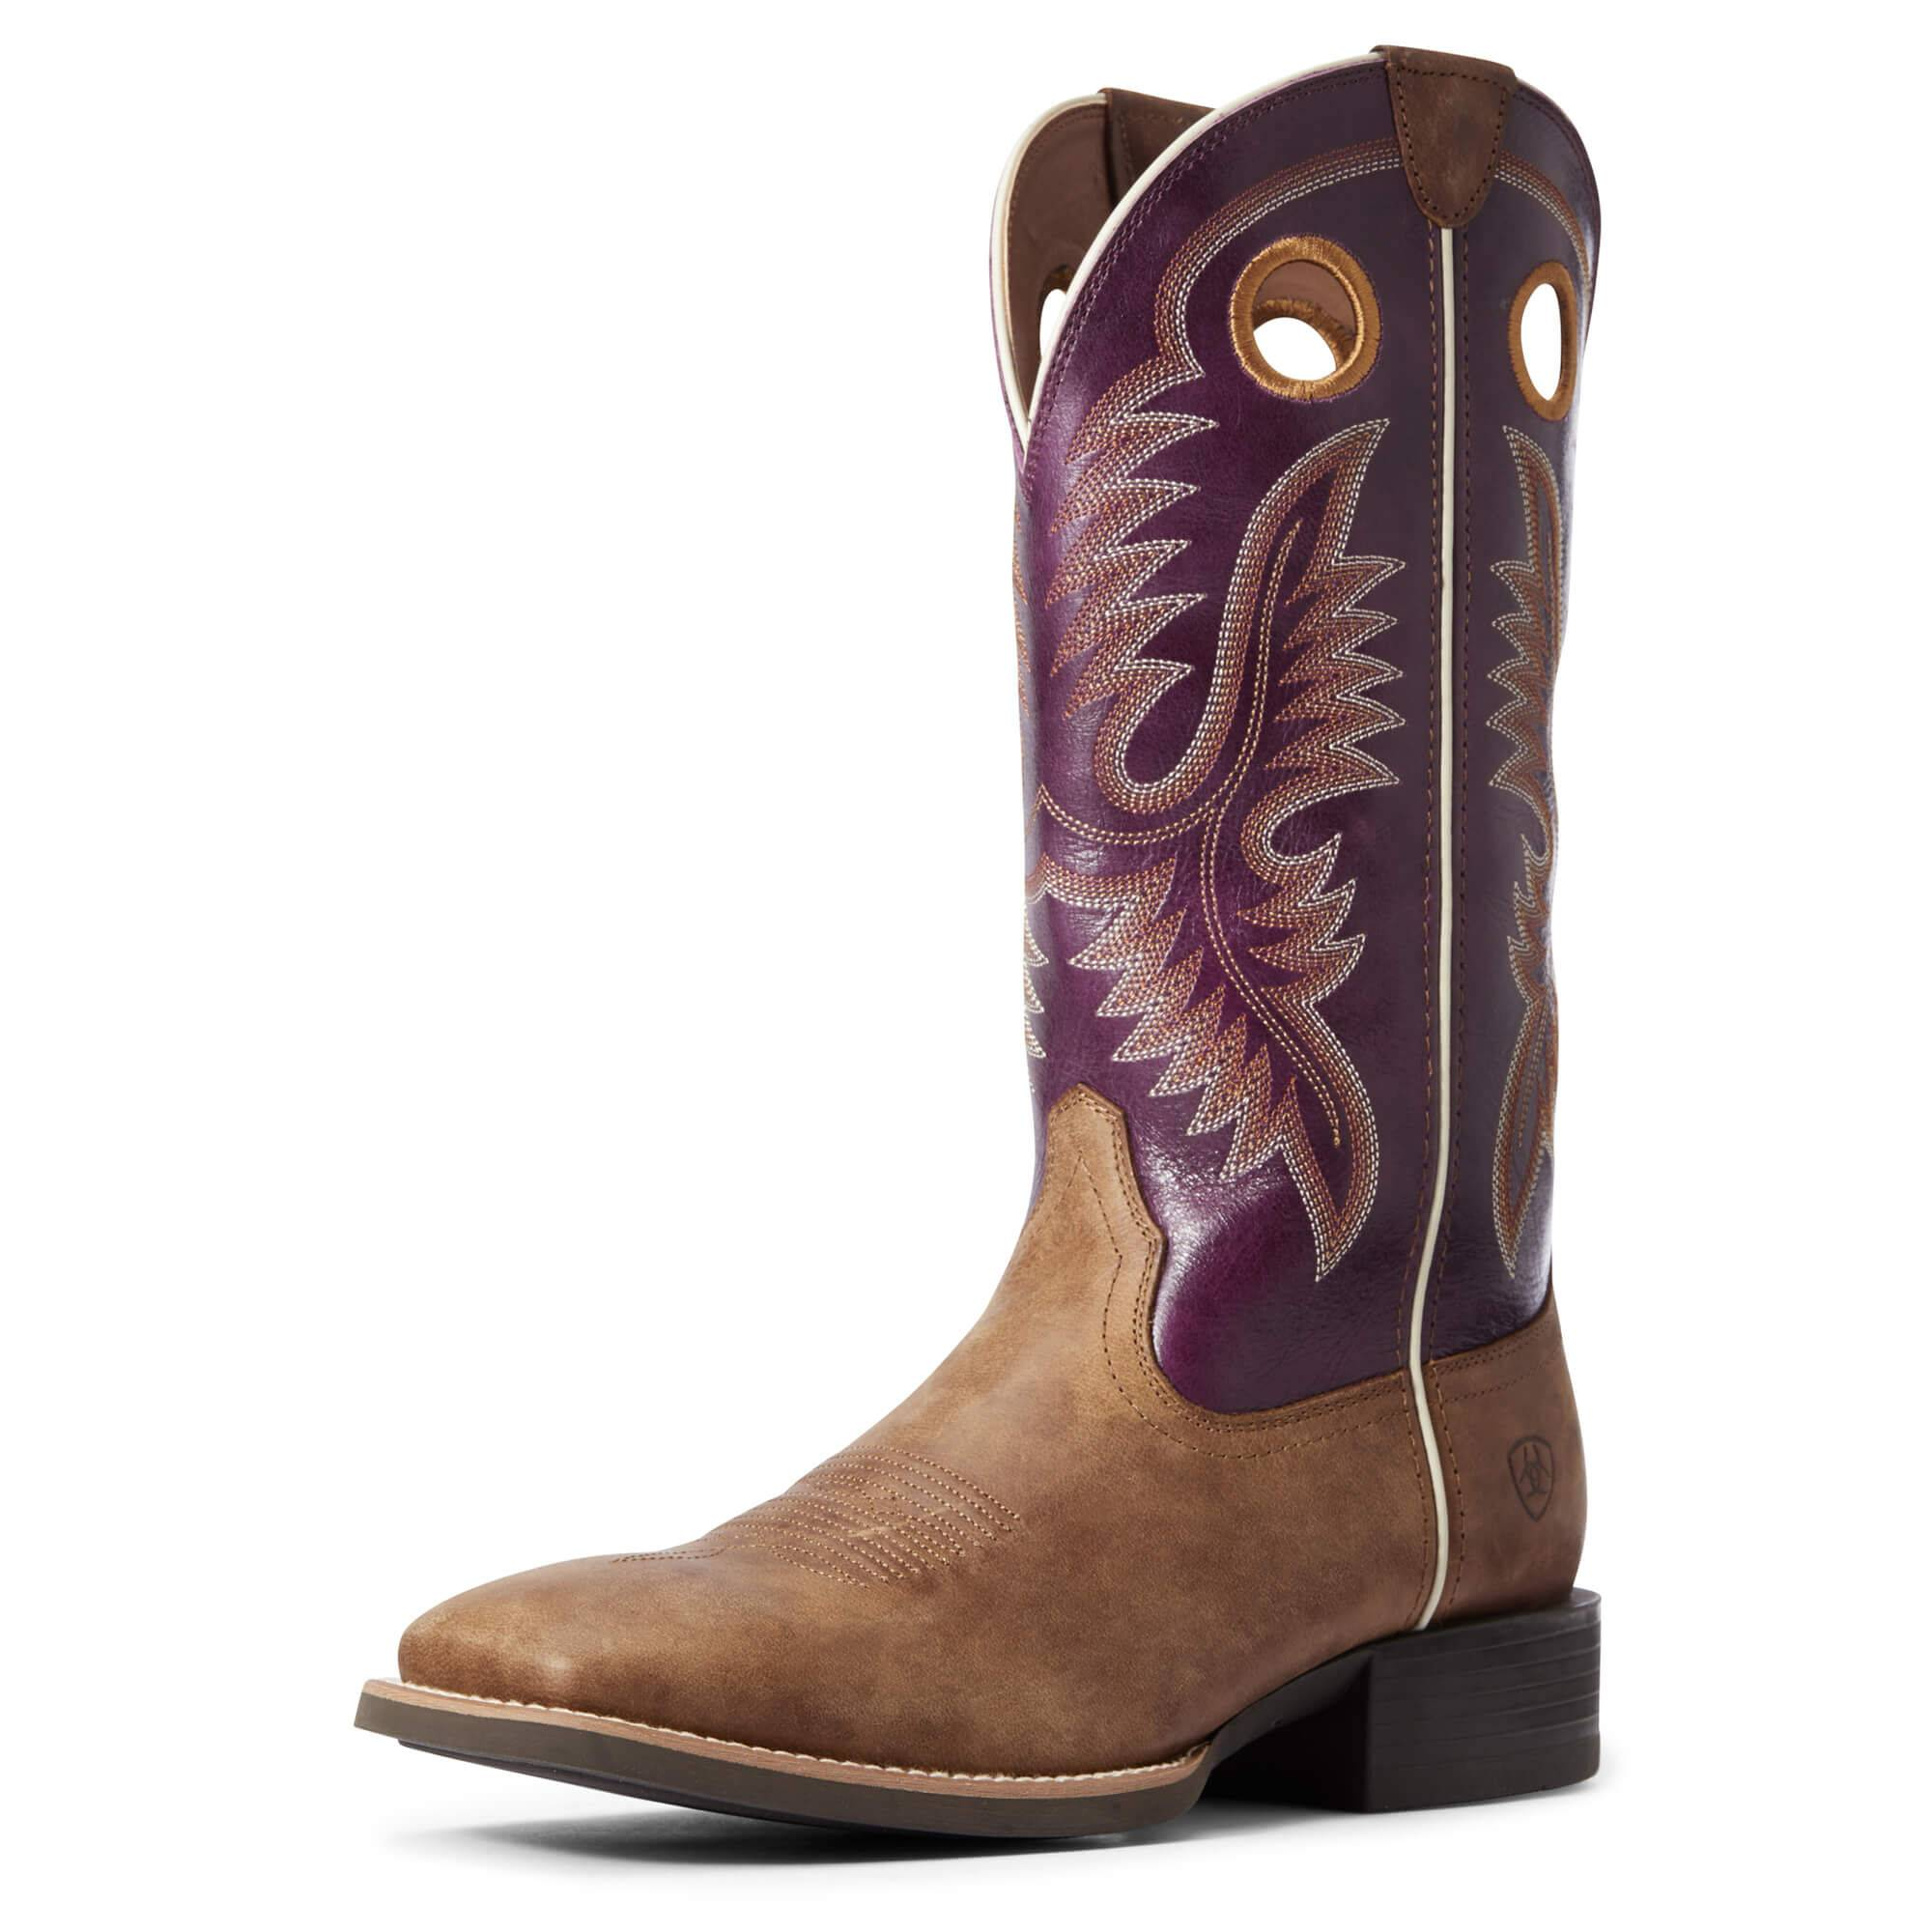 Ariat Men's Sport Teamster Western Boots in Valley Brown Leather, Size 7.5 EE / Wide by Ariat